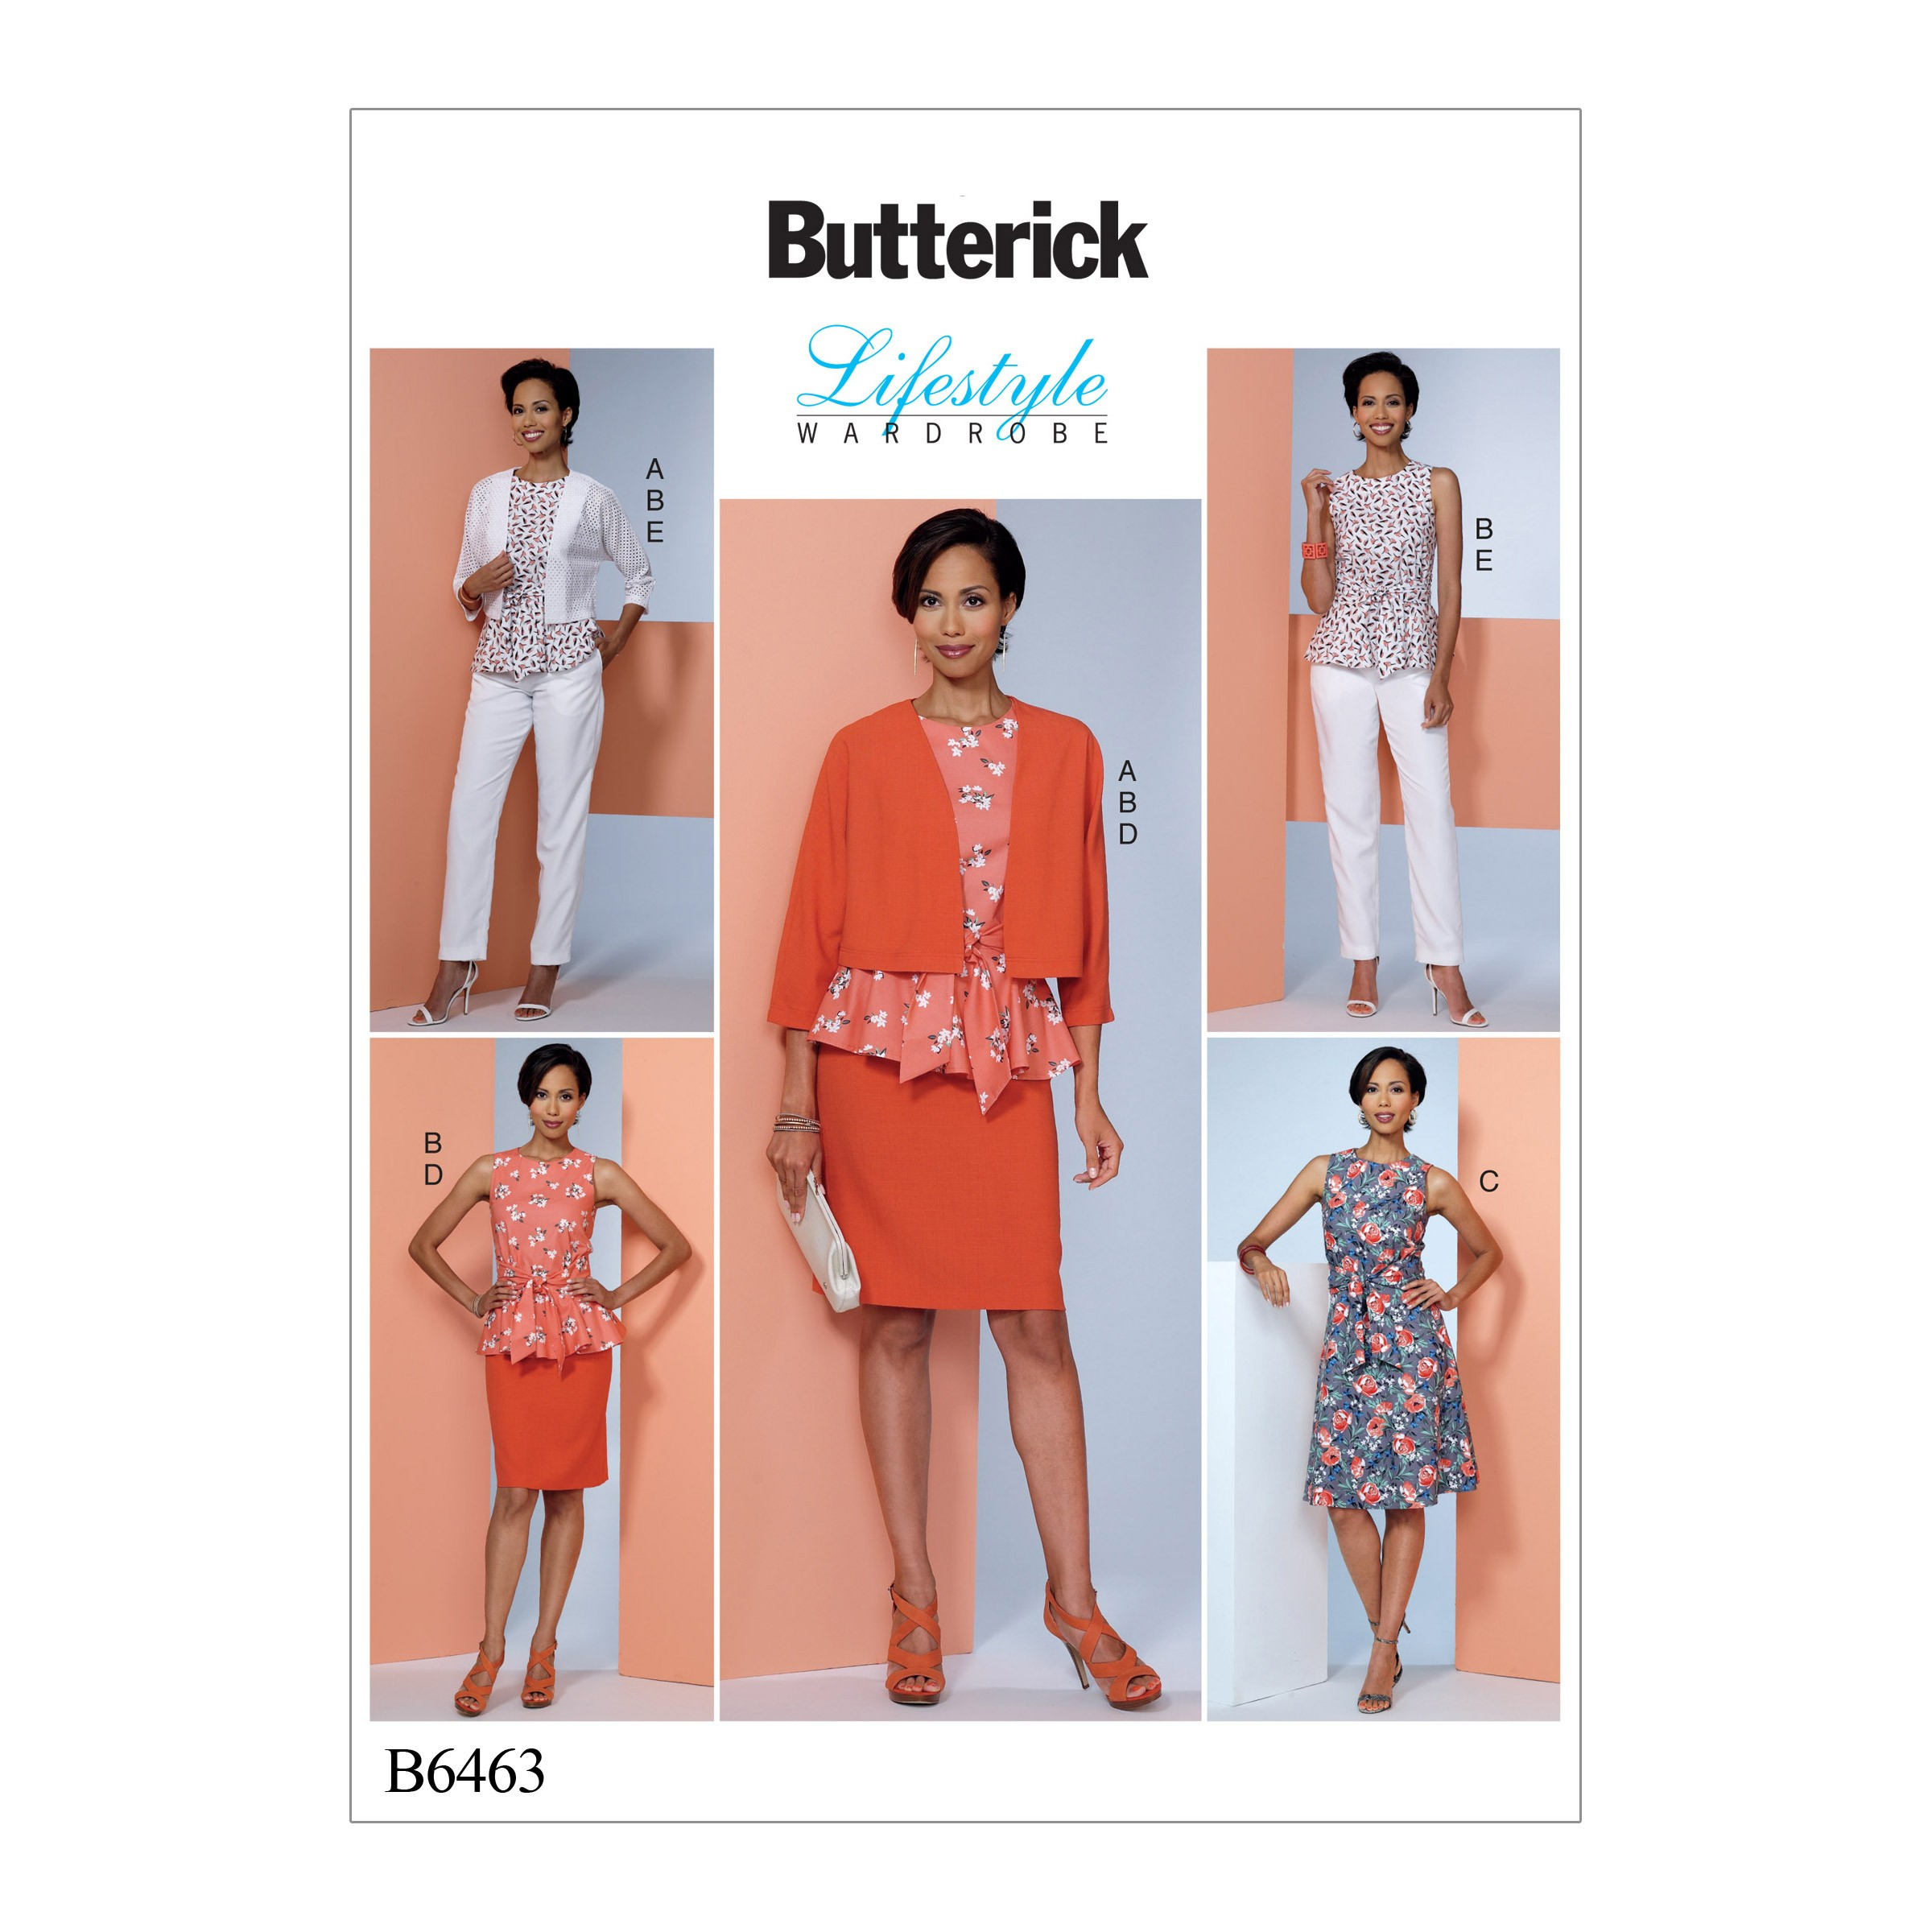 Butterick Sewing Pattern 6463 Misses' Dolman Sleeve Jacket Attached Sash Top & Dress